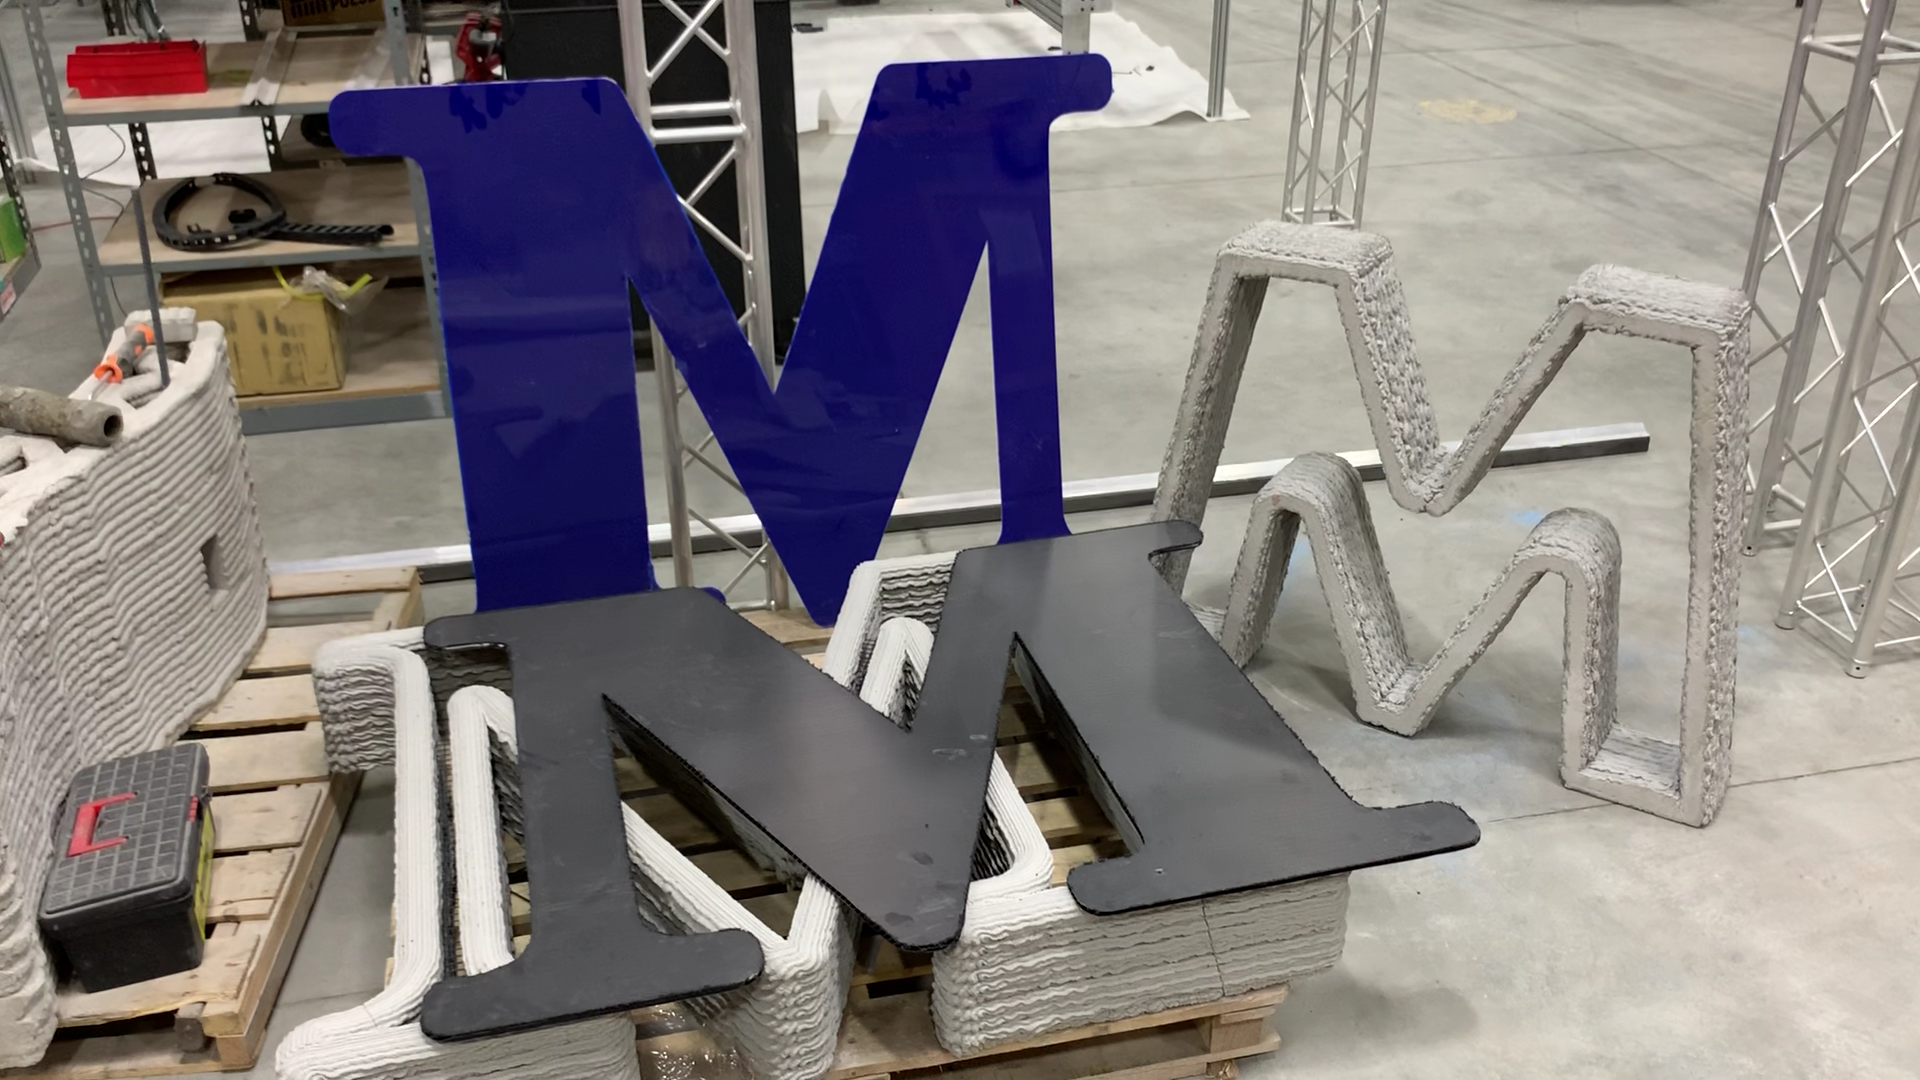 3D printing monument letters signage for companies with Mudbots concrete printer